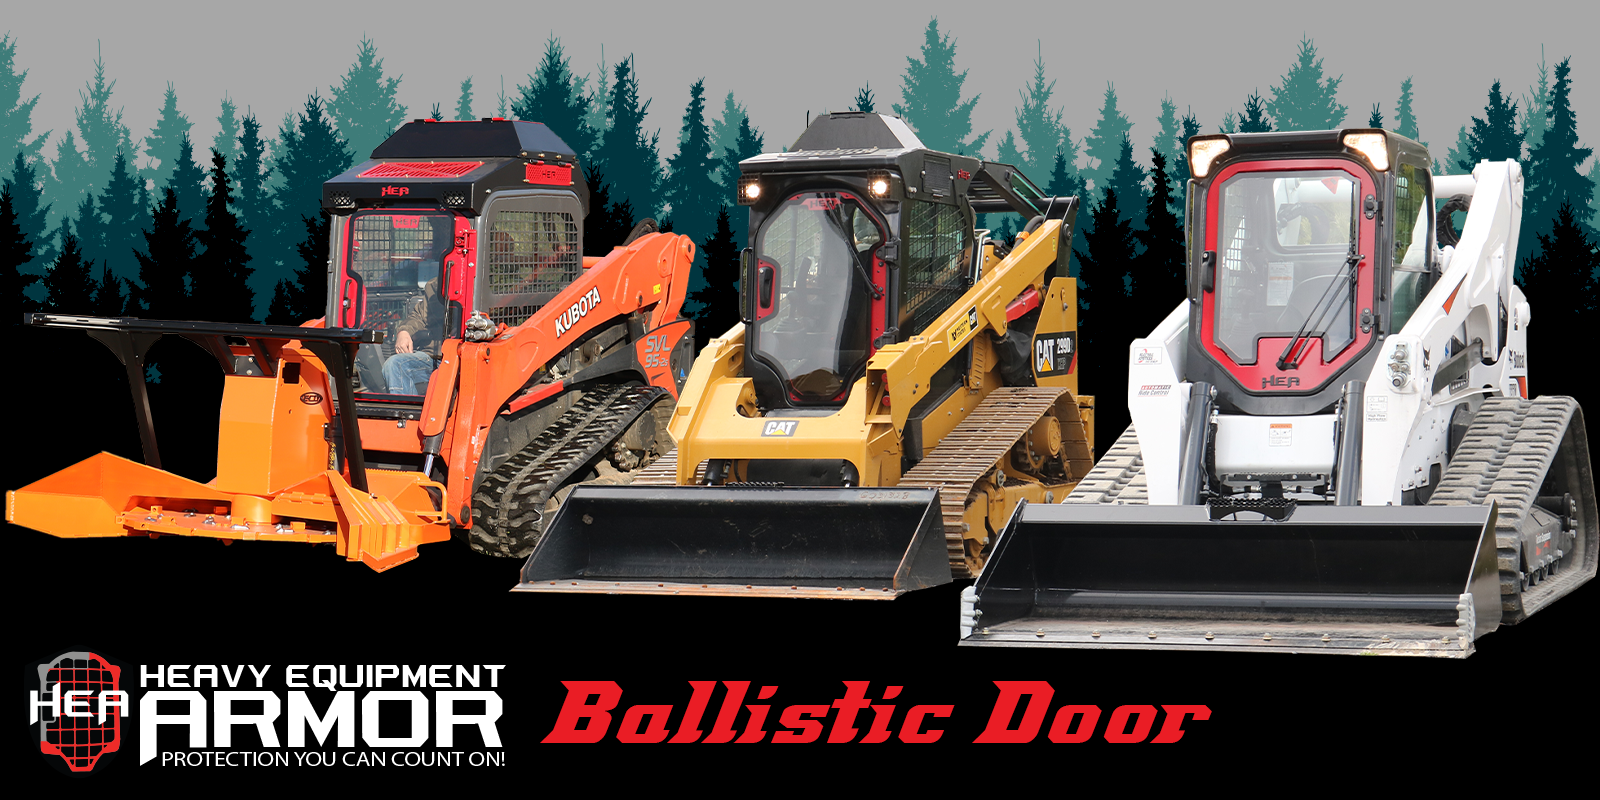 Skid Steer Ballistic Door Products